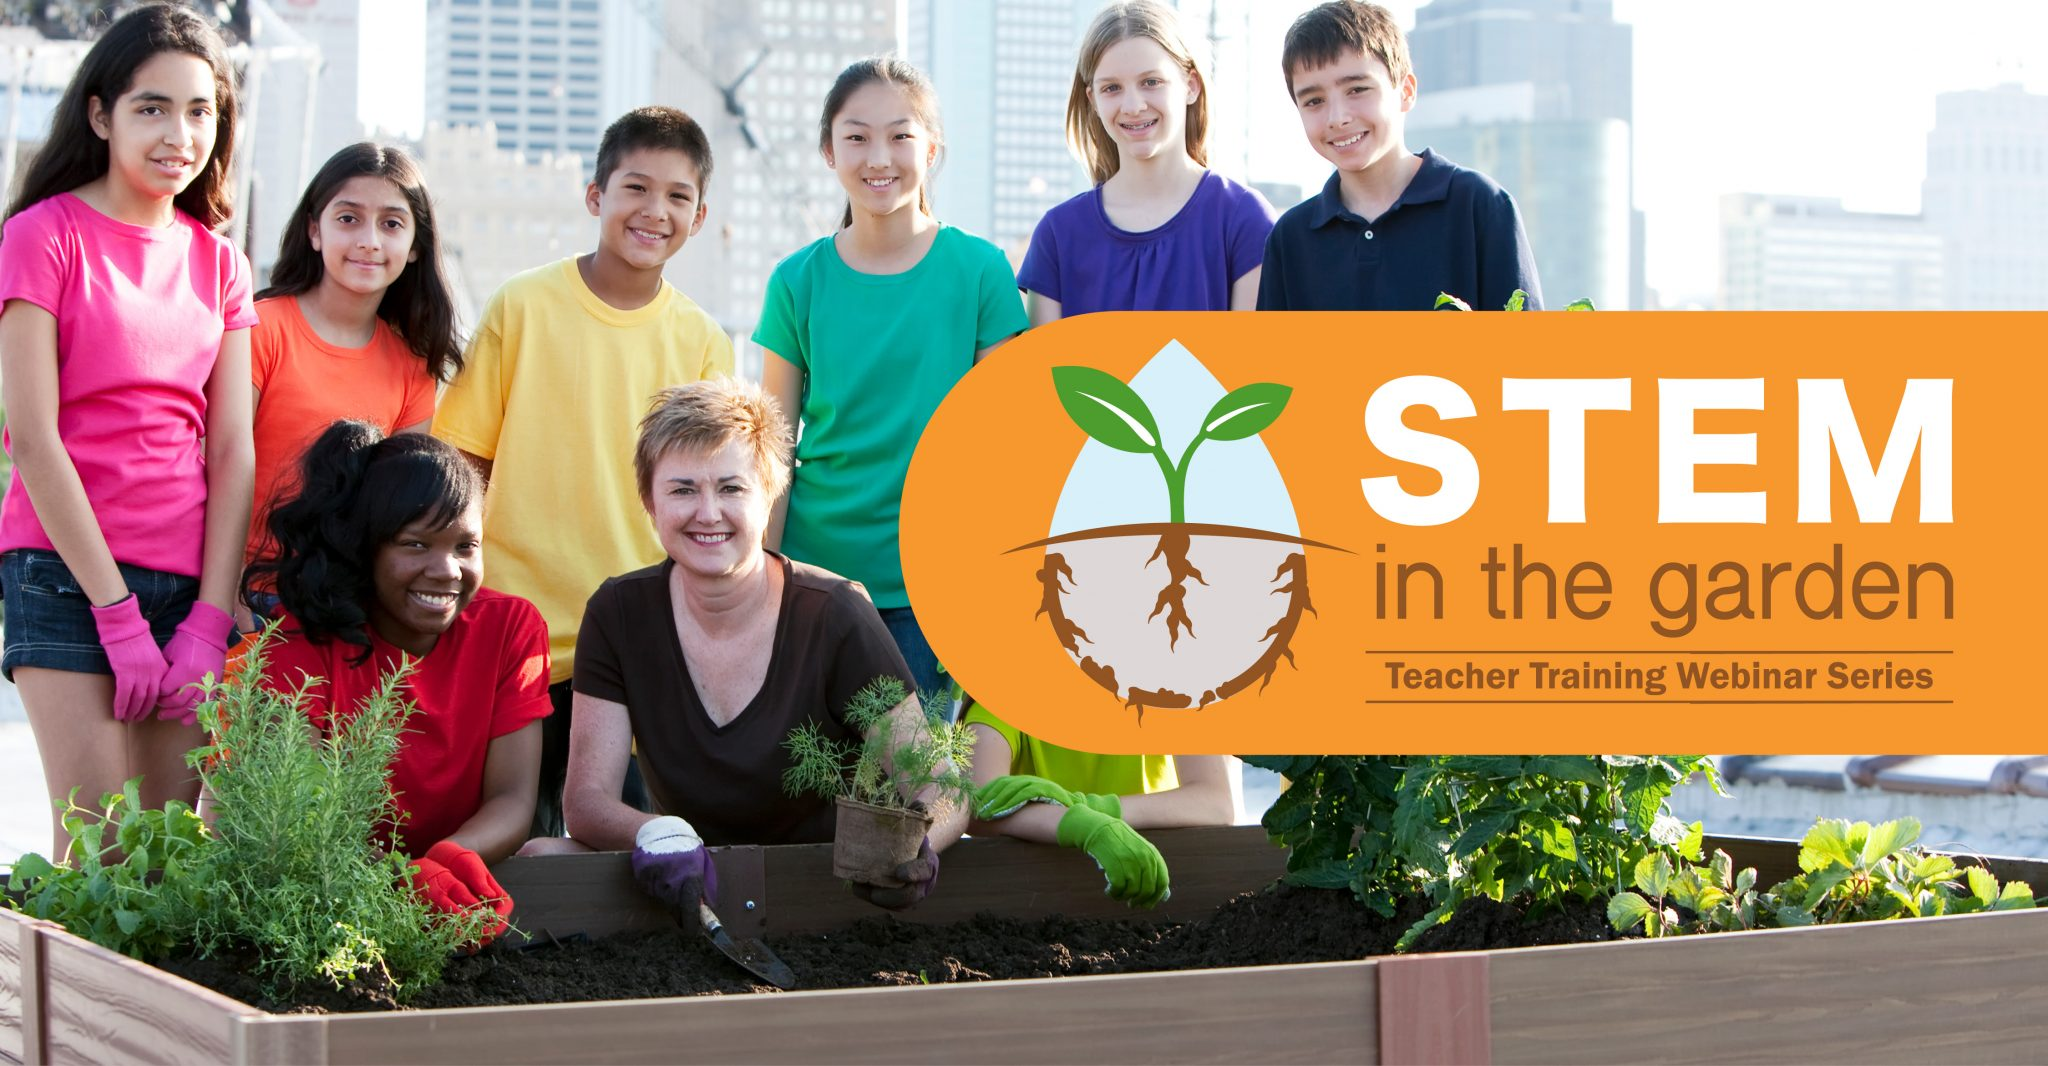 Teacher is with middle school students posing around a raised garden bed in the city.